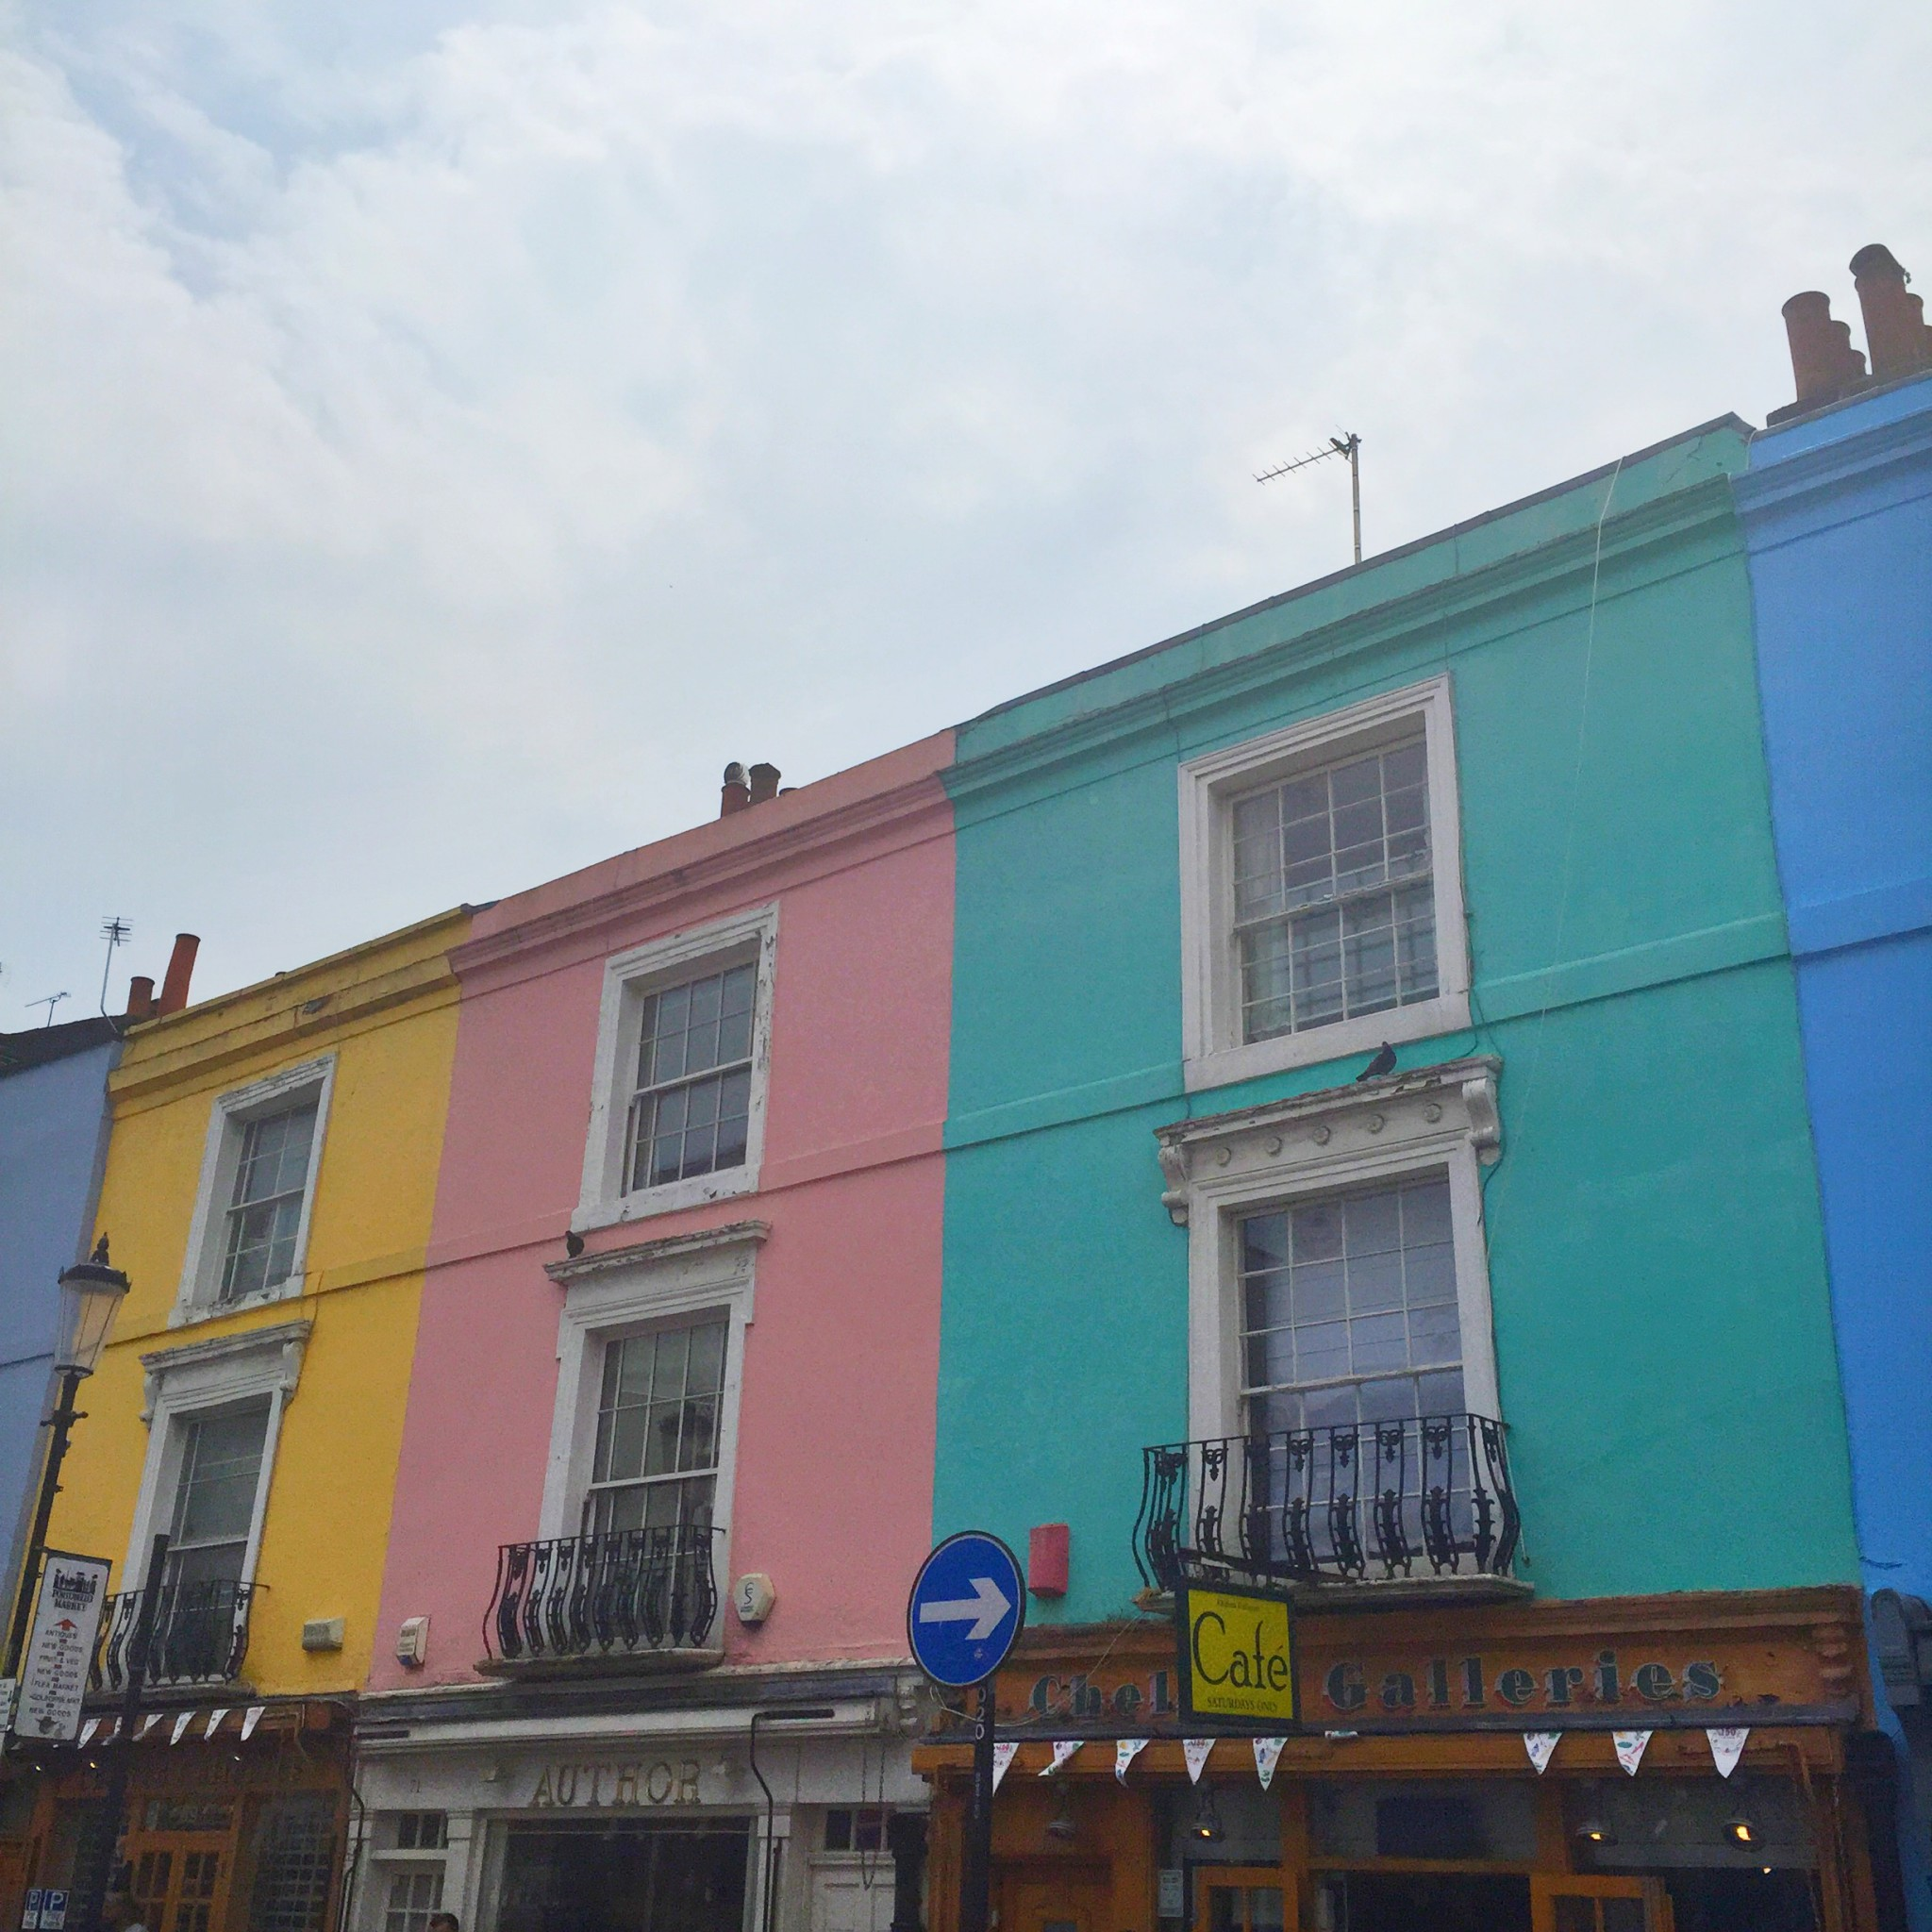 Portobello Road | Hello! Hooray!